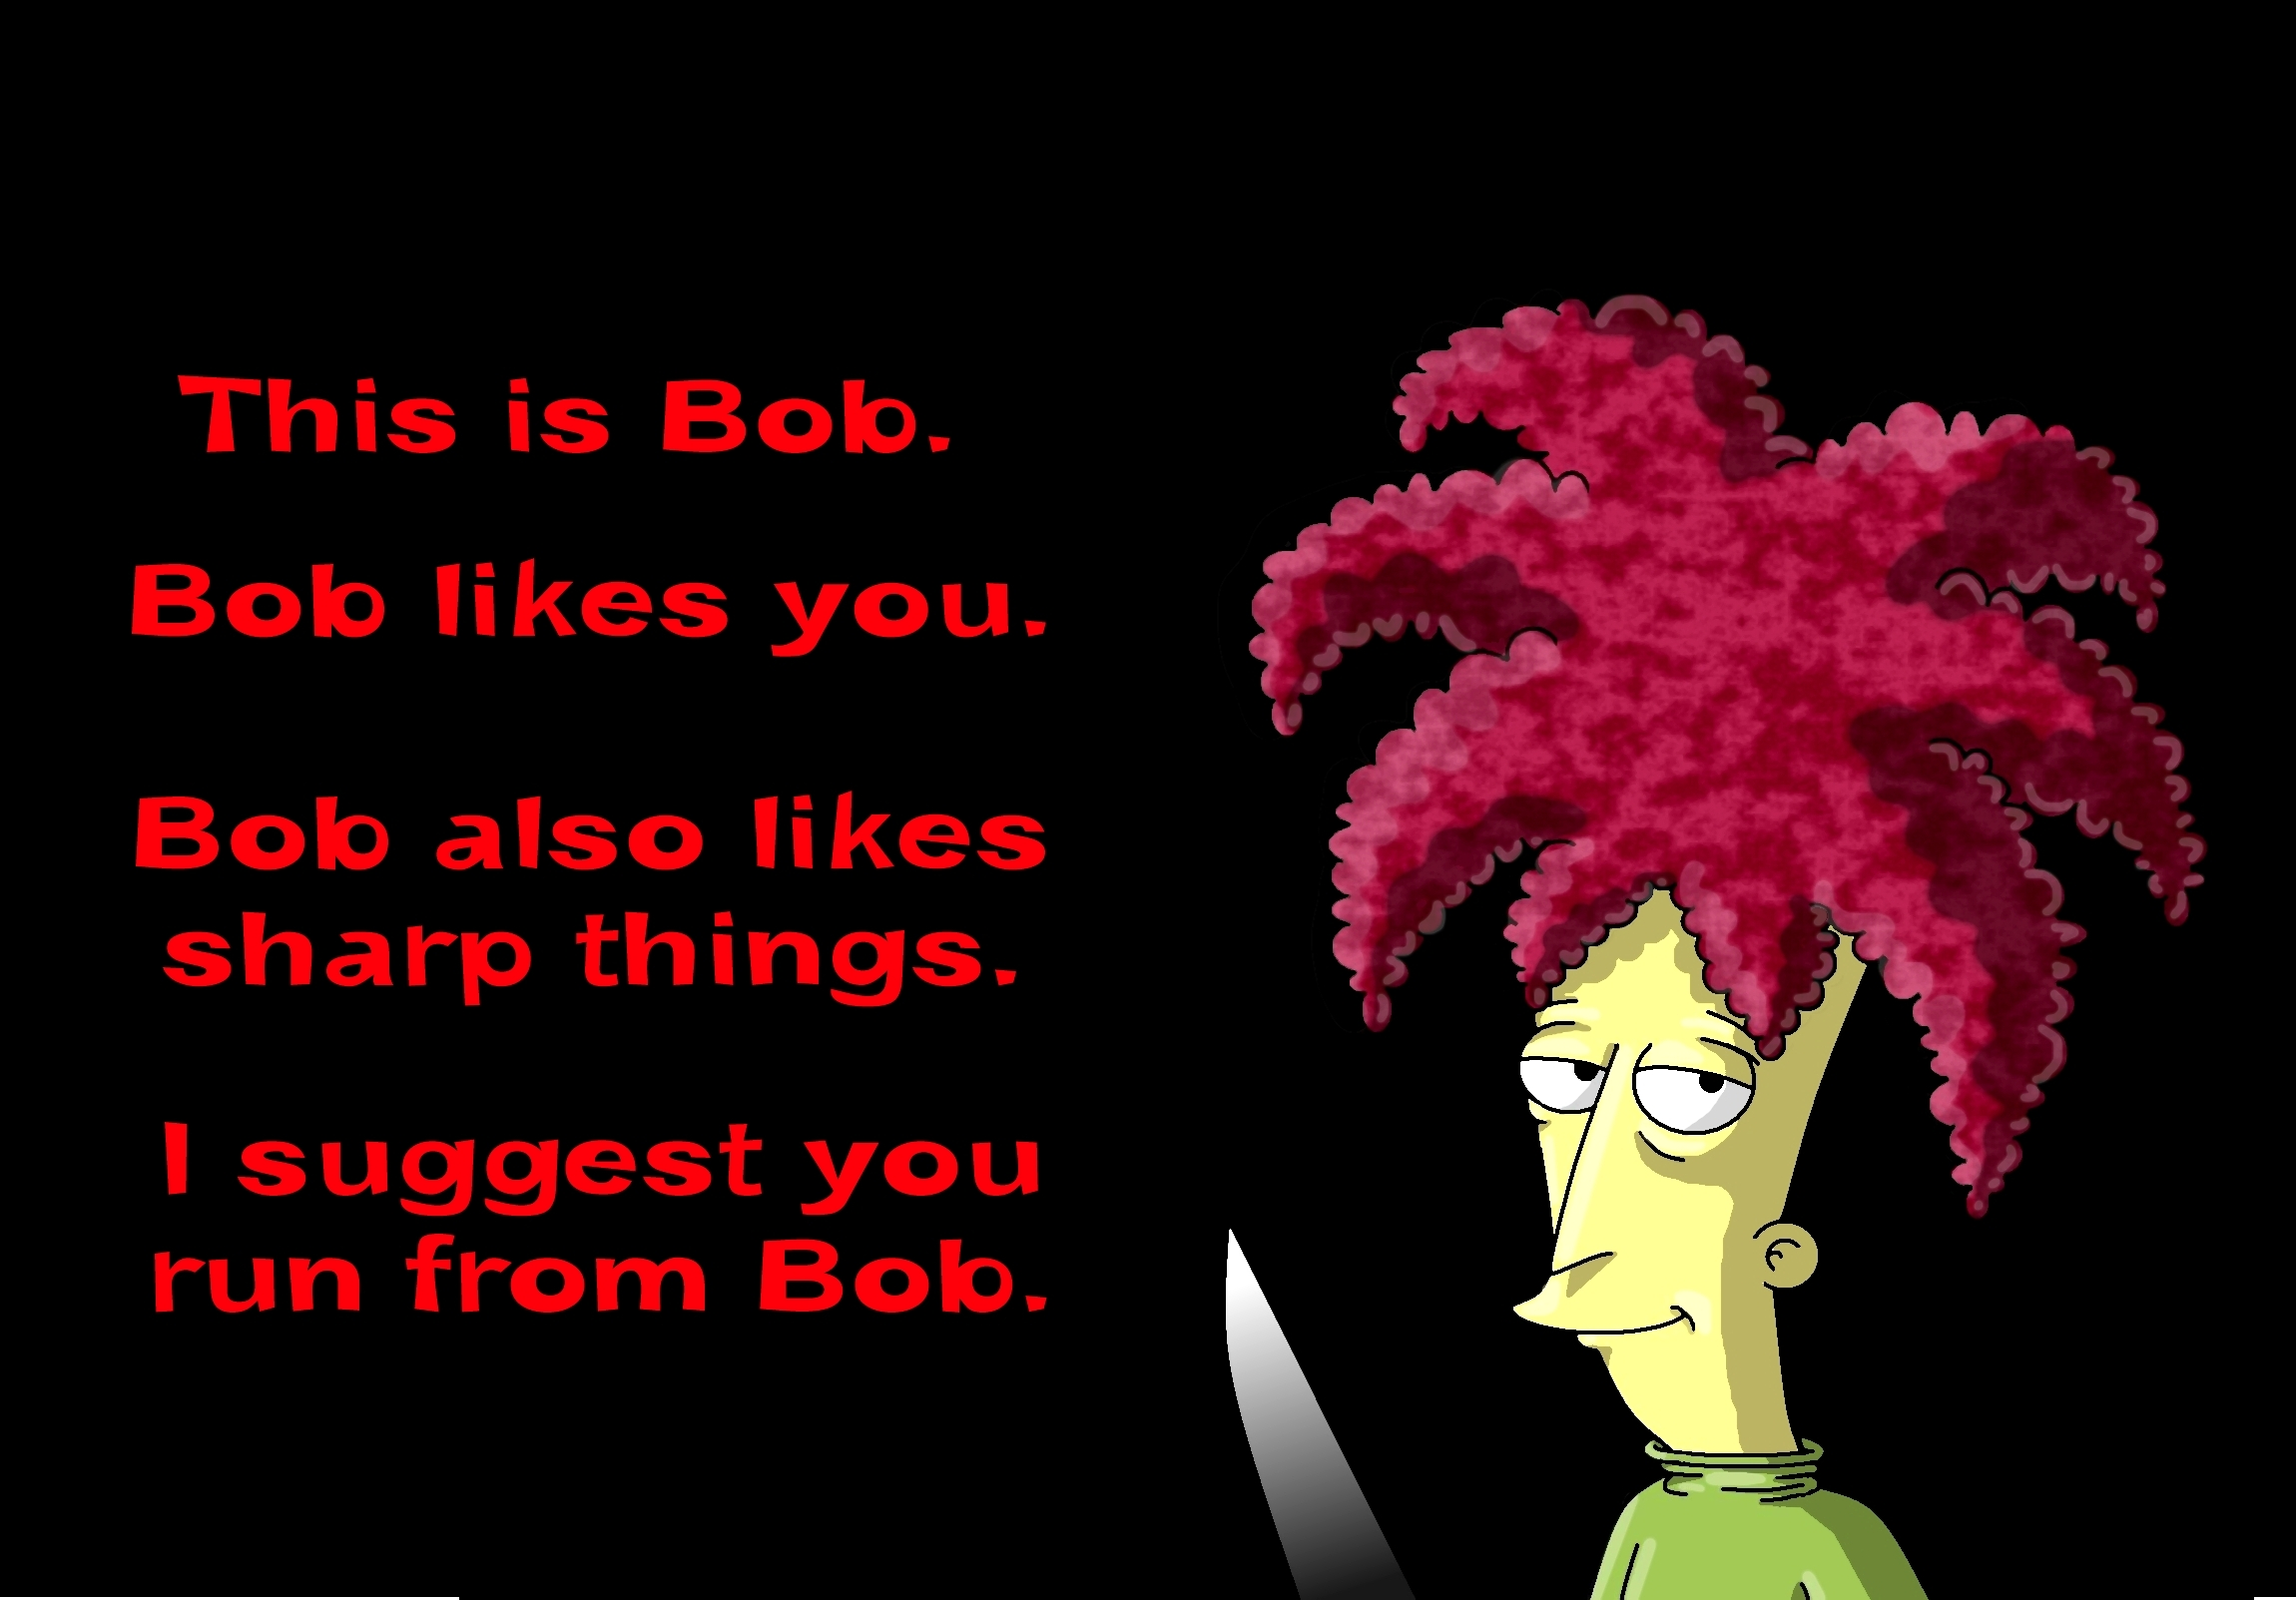 This is Bob. by Nevuela